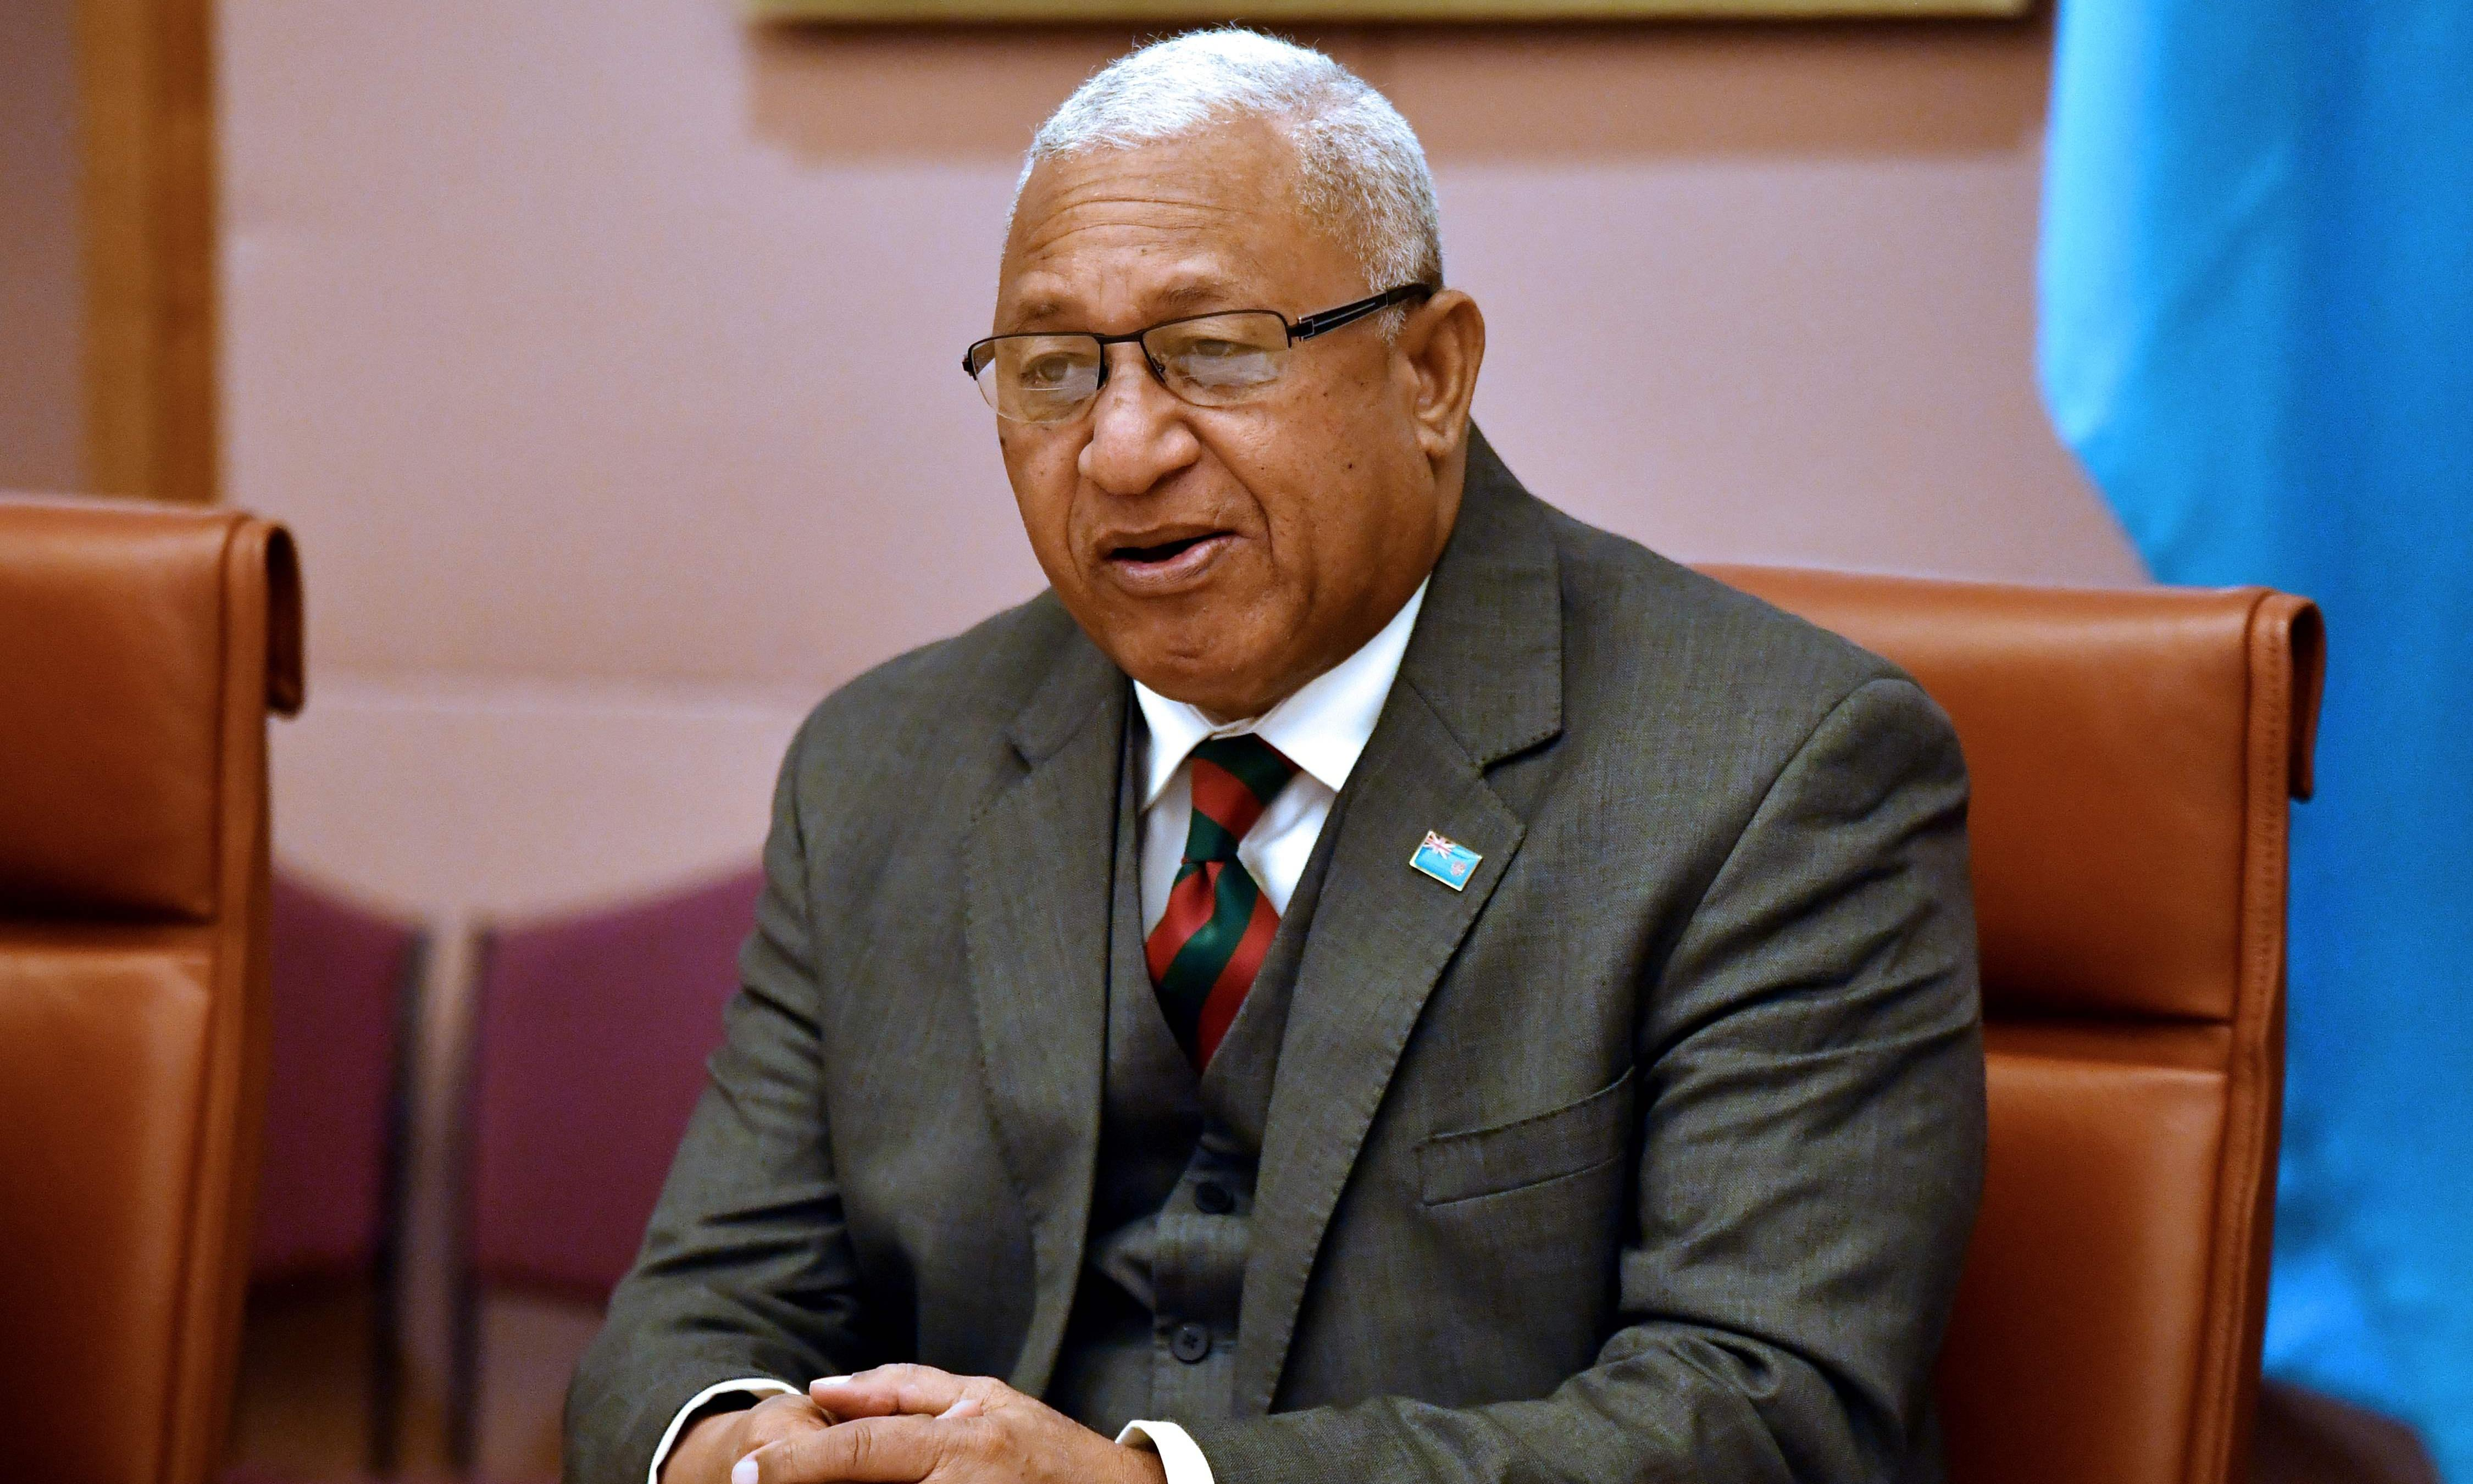 Fiji PM Bainimarama won't face assault charges over carpark tussle with MP